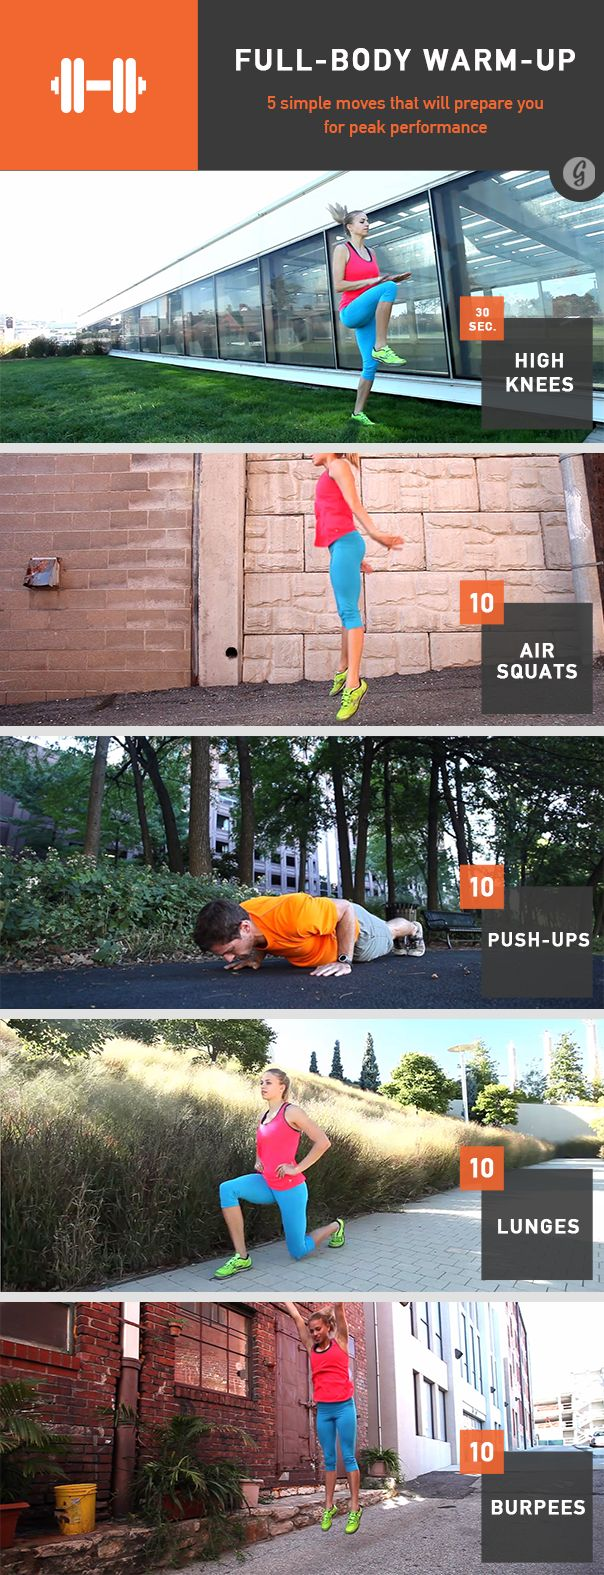 Full Body warm-up guide! Stay cram-free during workout :) #fitness #tips